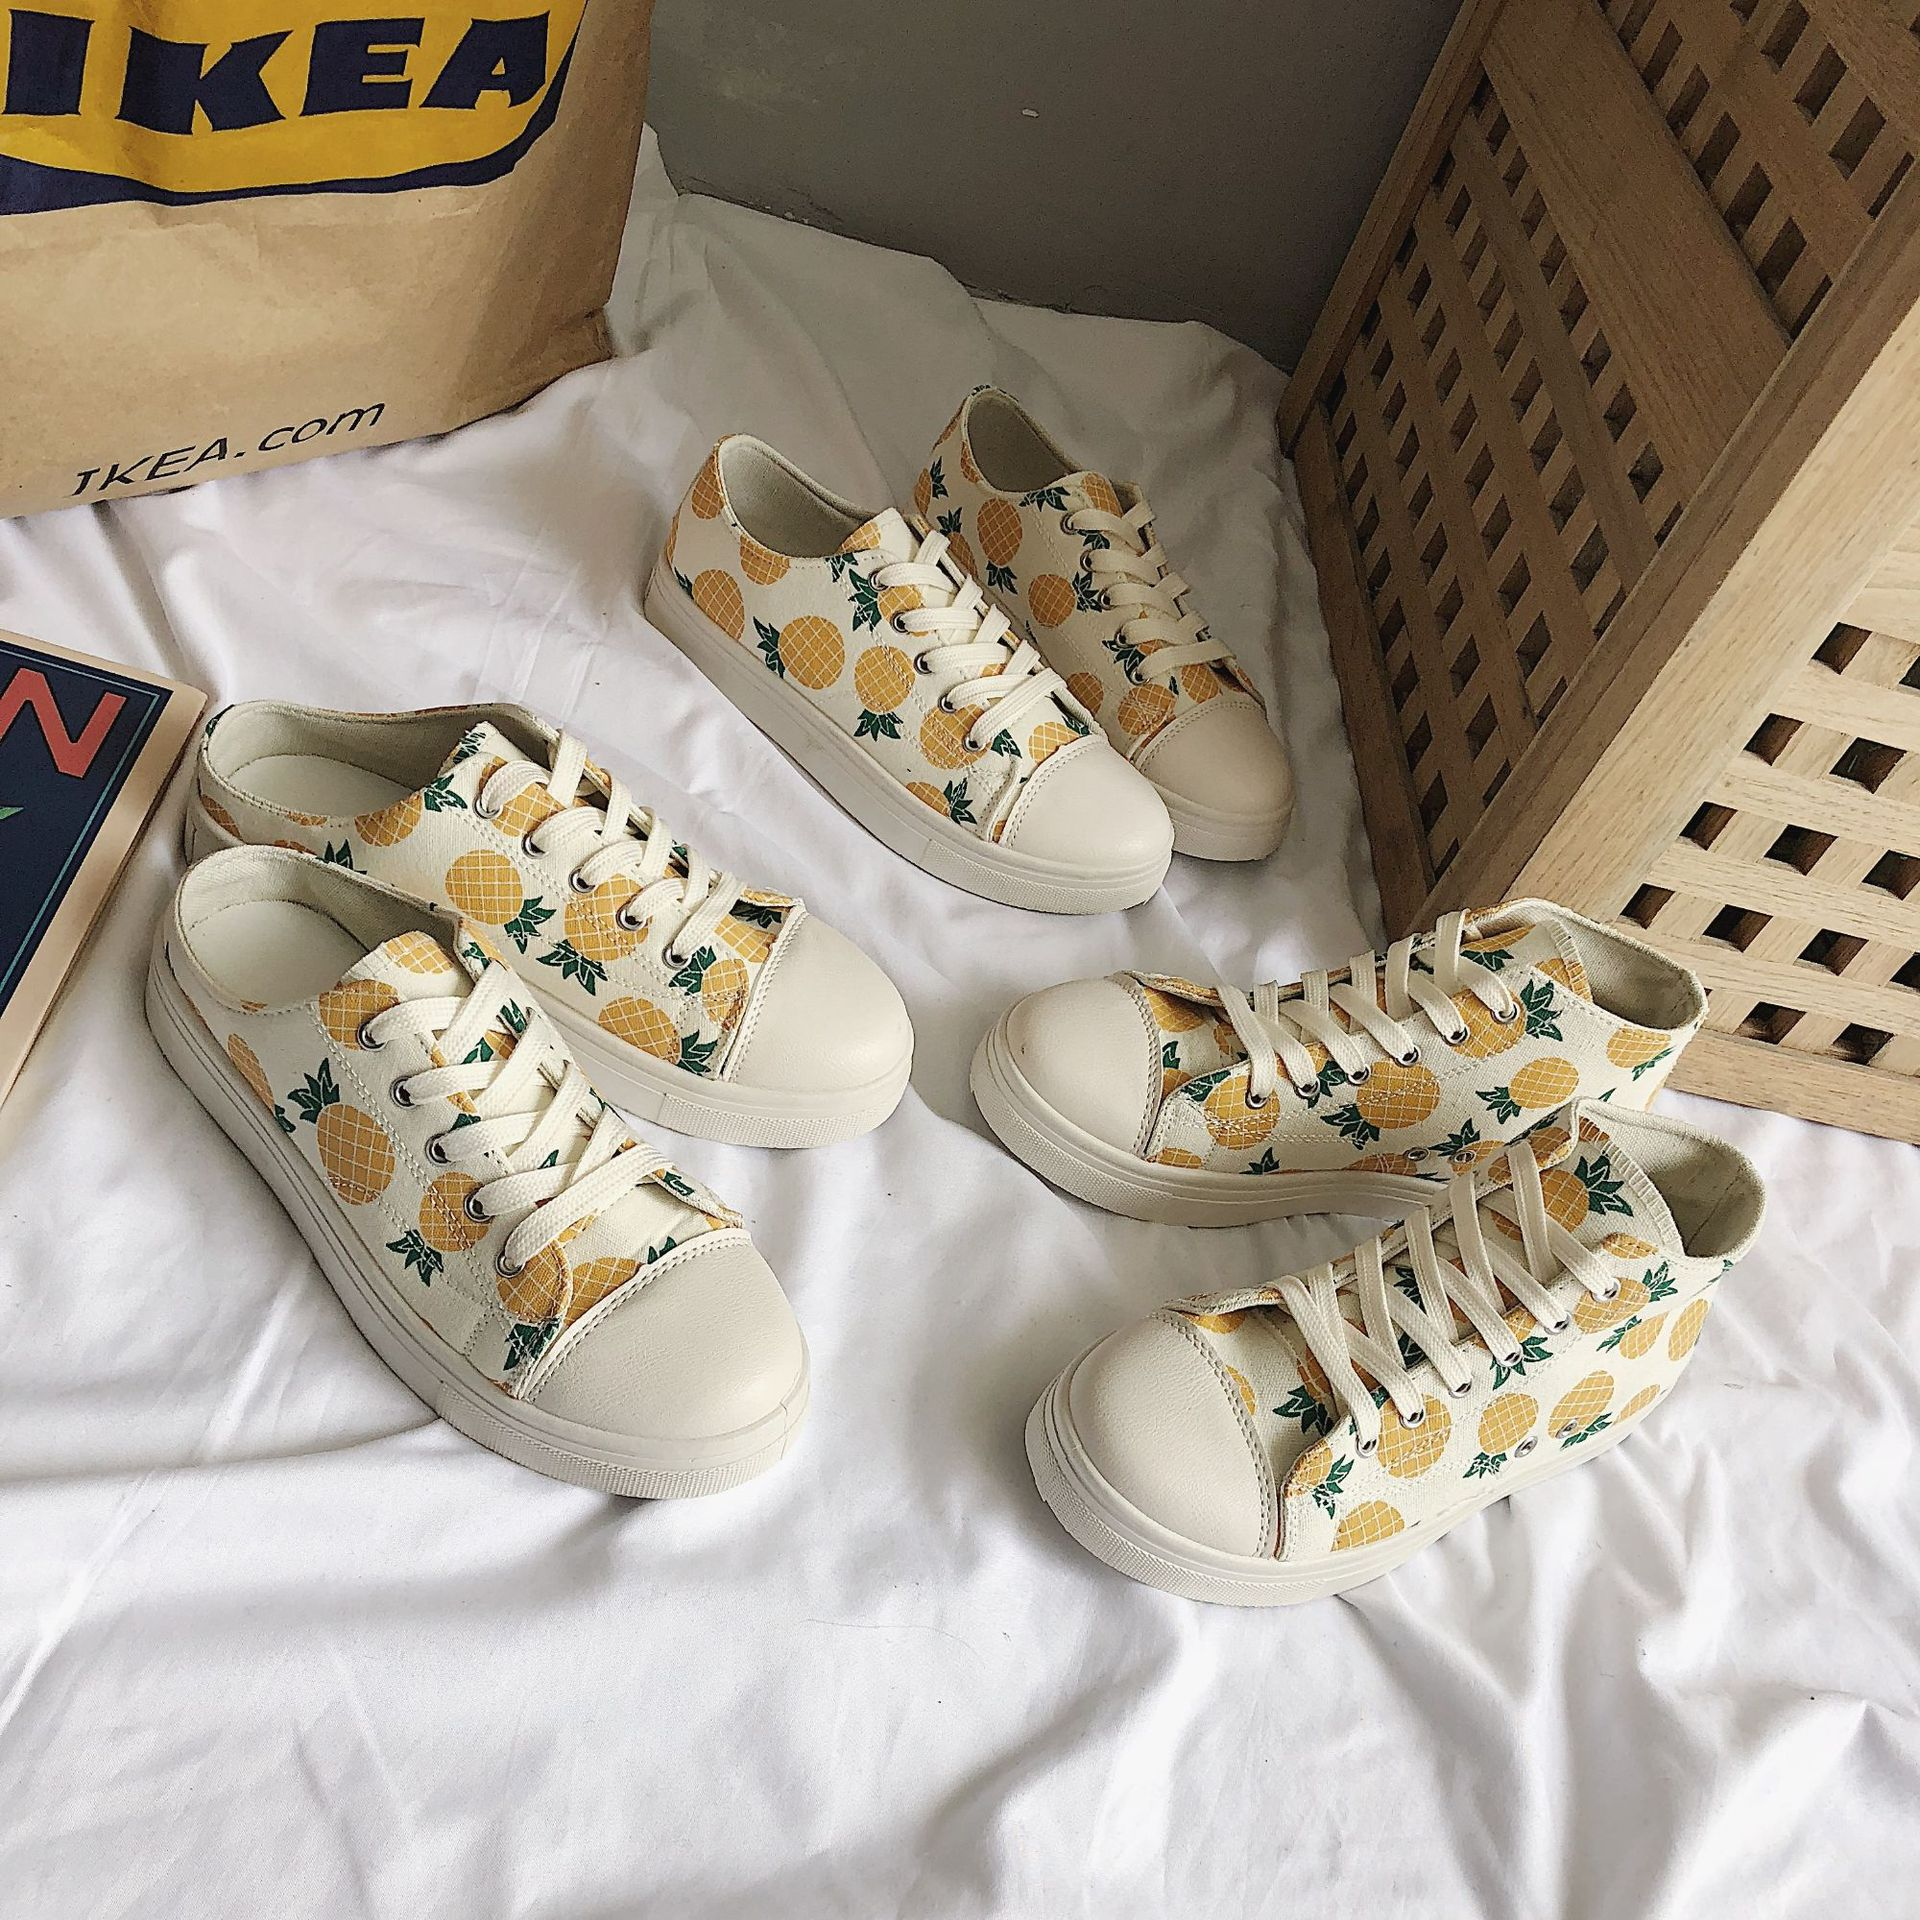 Strawberry Sneakers Online Celebrity White Shoes 2019 Spring New Style Versatile Shoes Children Students Korean-style Casual Can